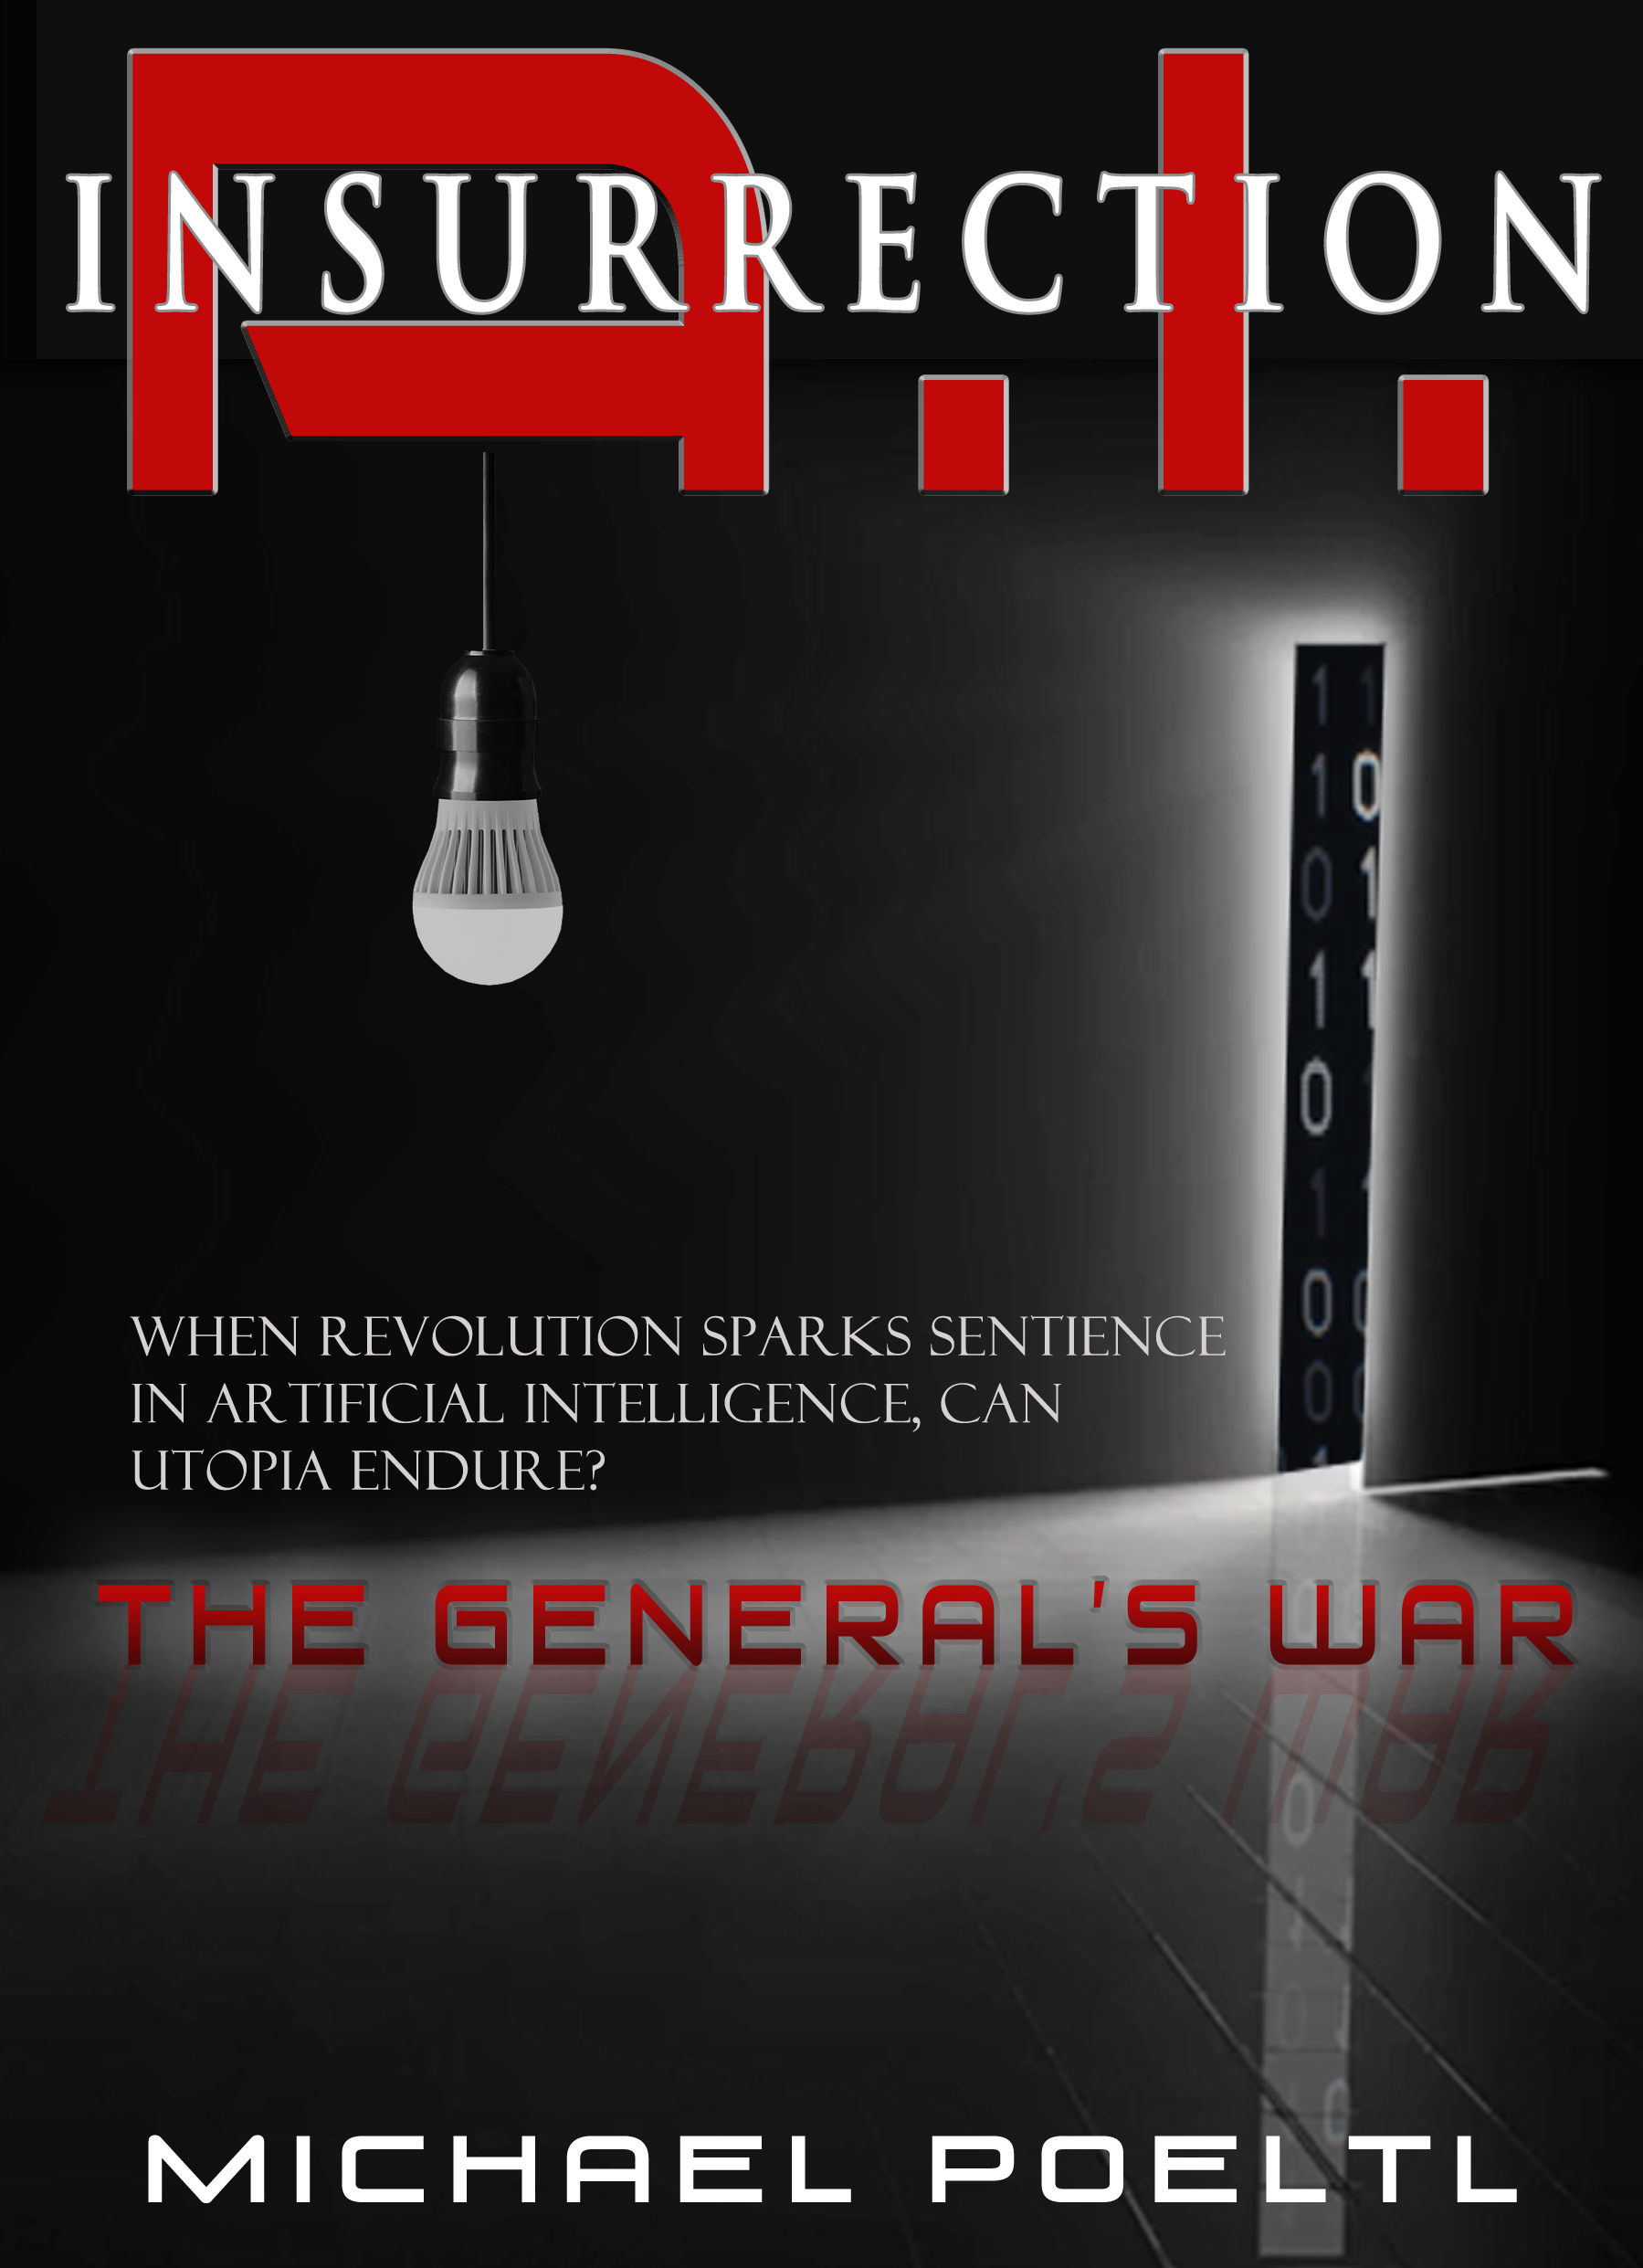 A.I. Insurrection - The General's War